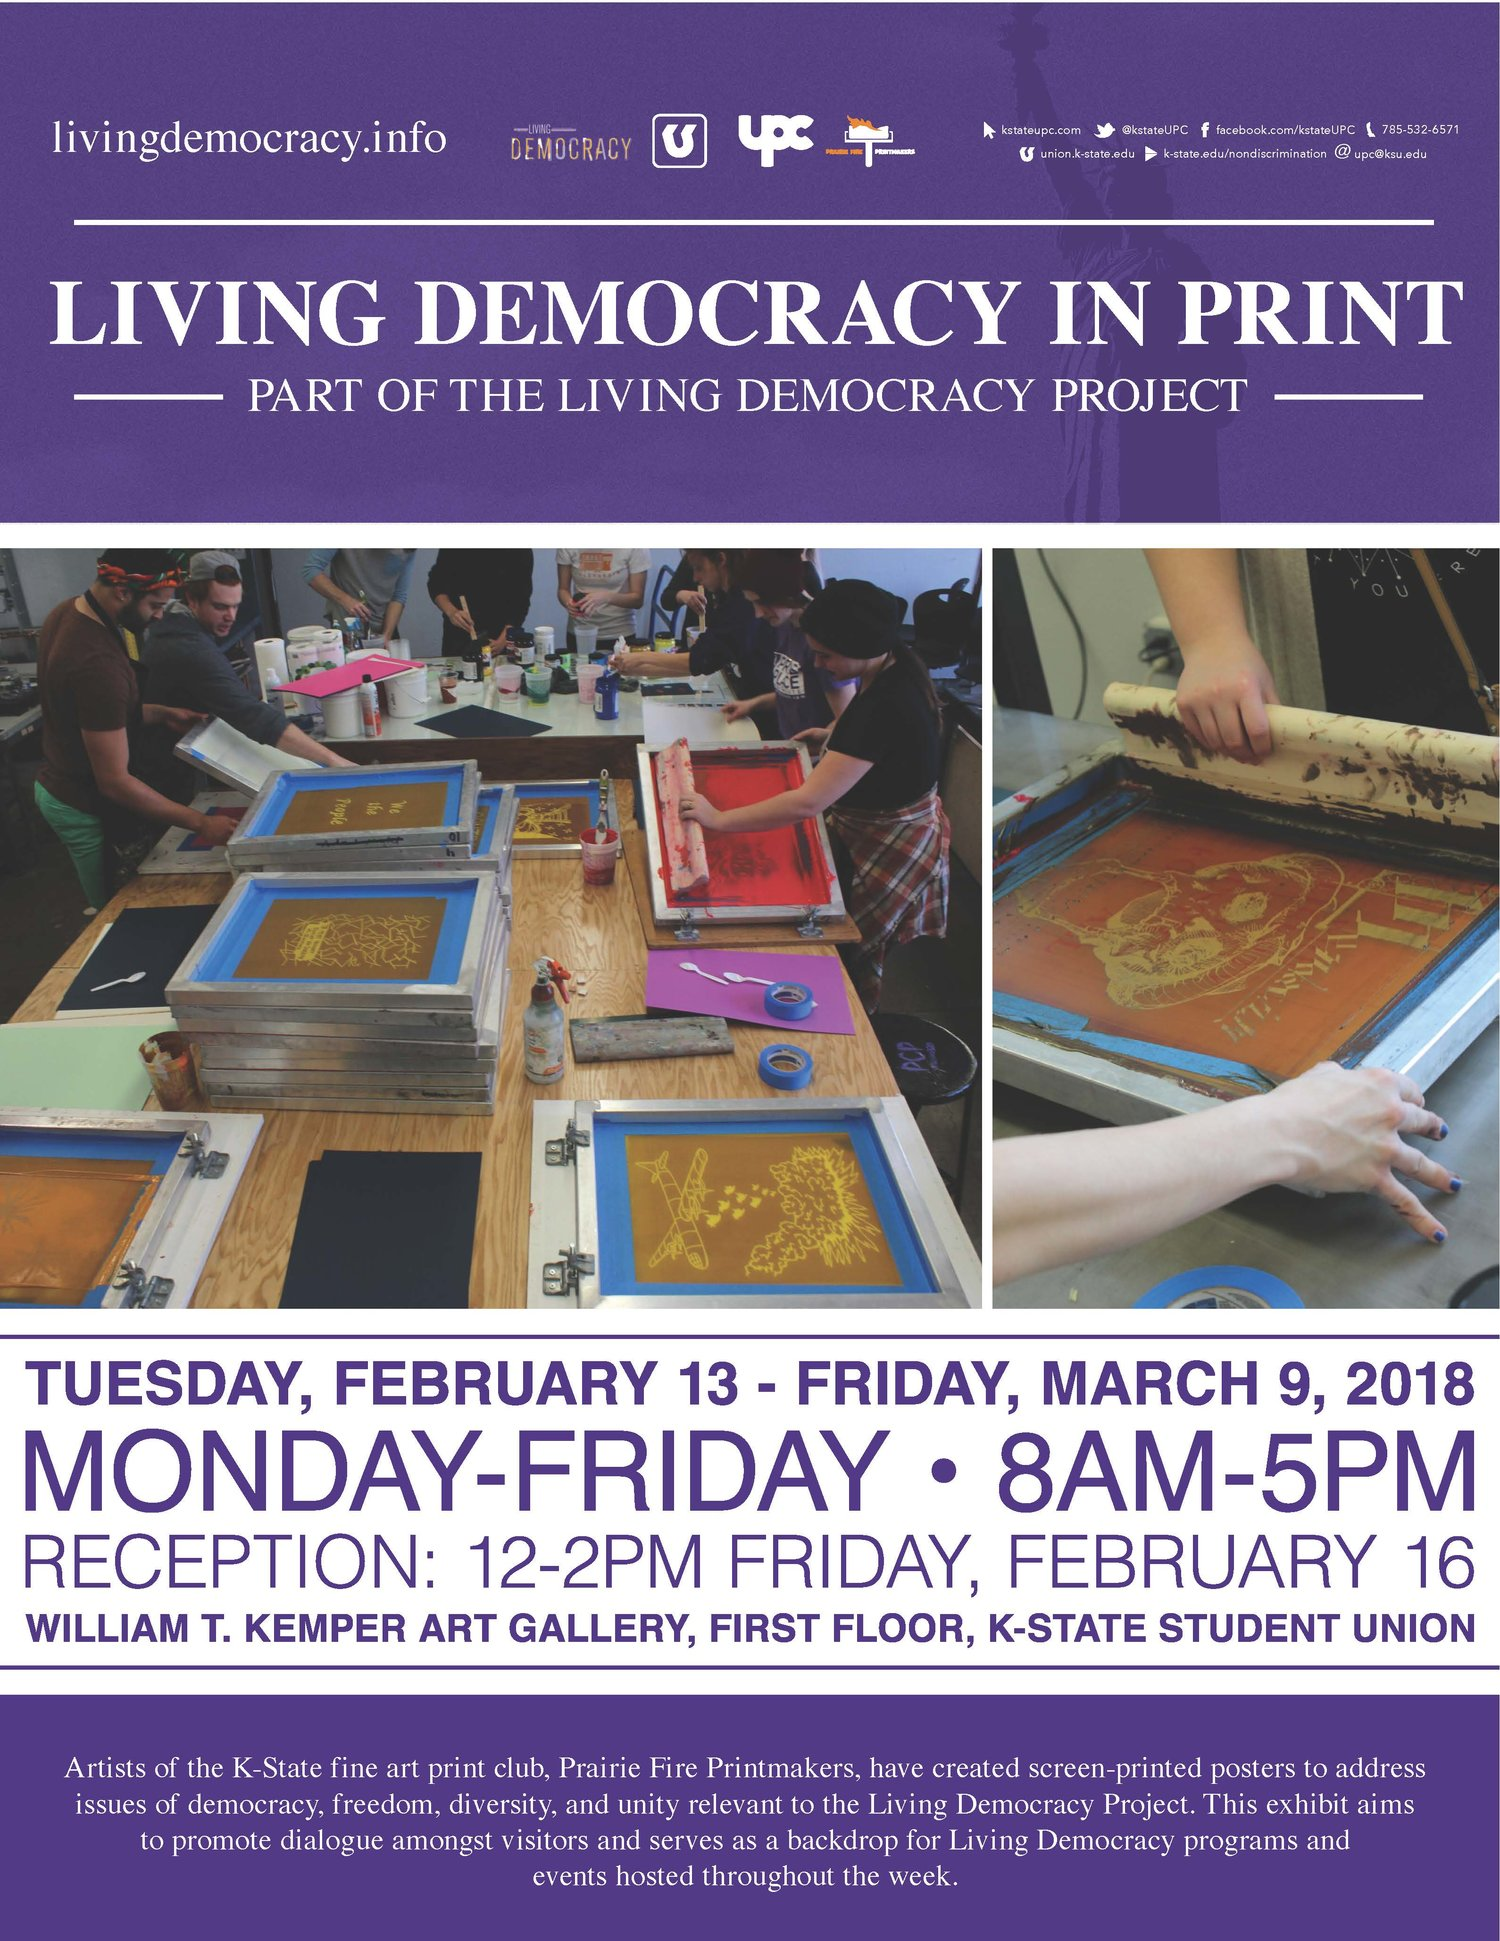 living democracy in print artist reception k state student union